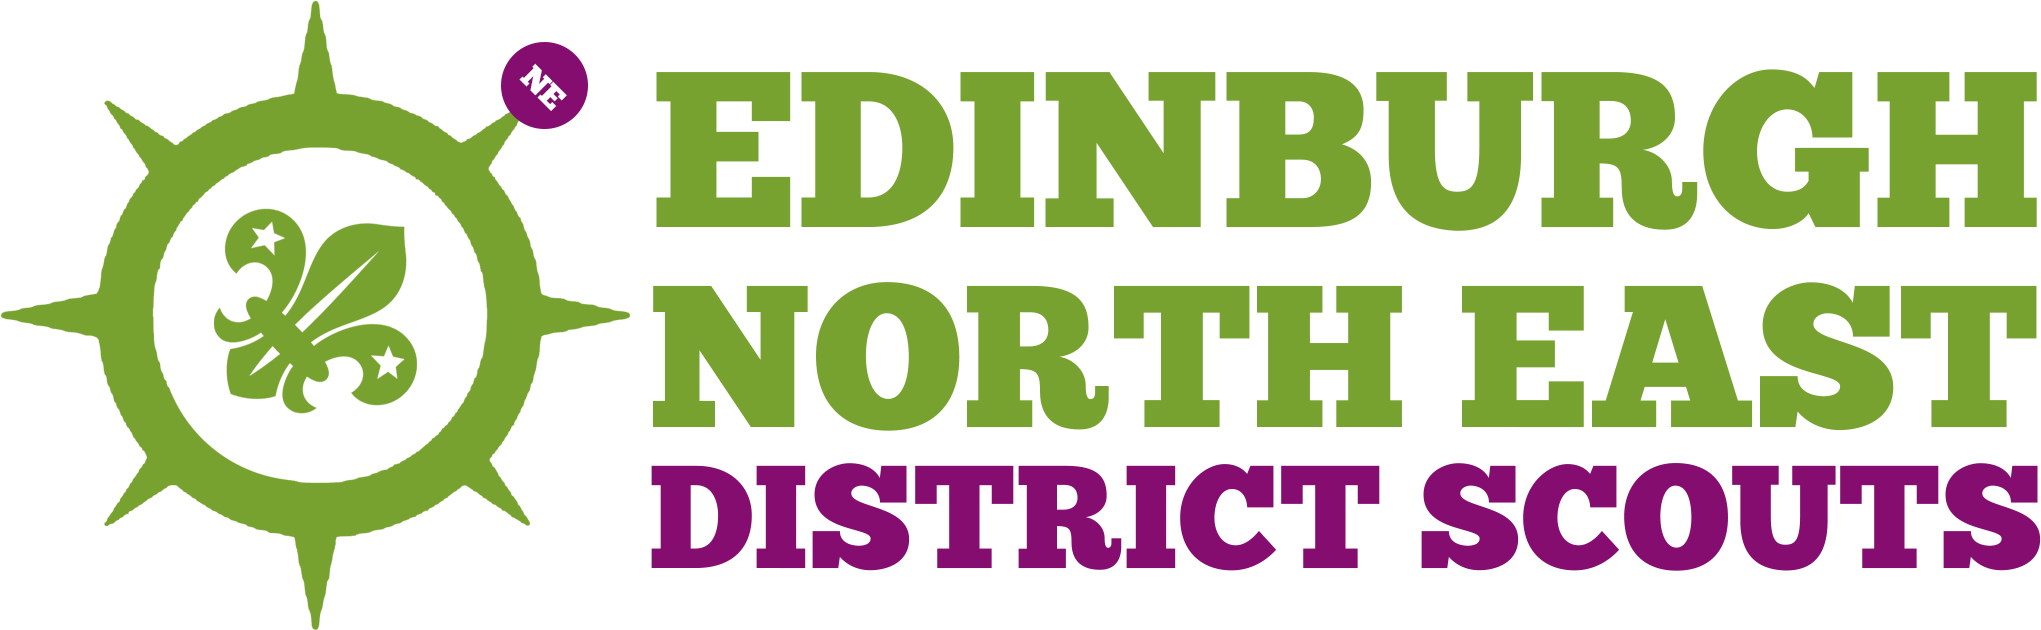 Edinburgh North East Scouts |